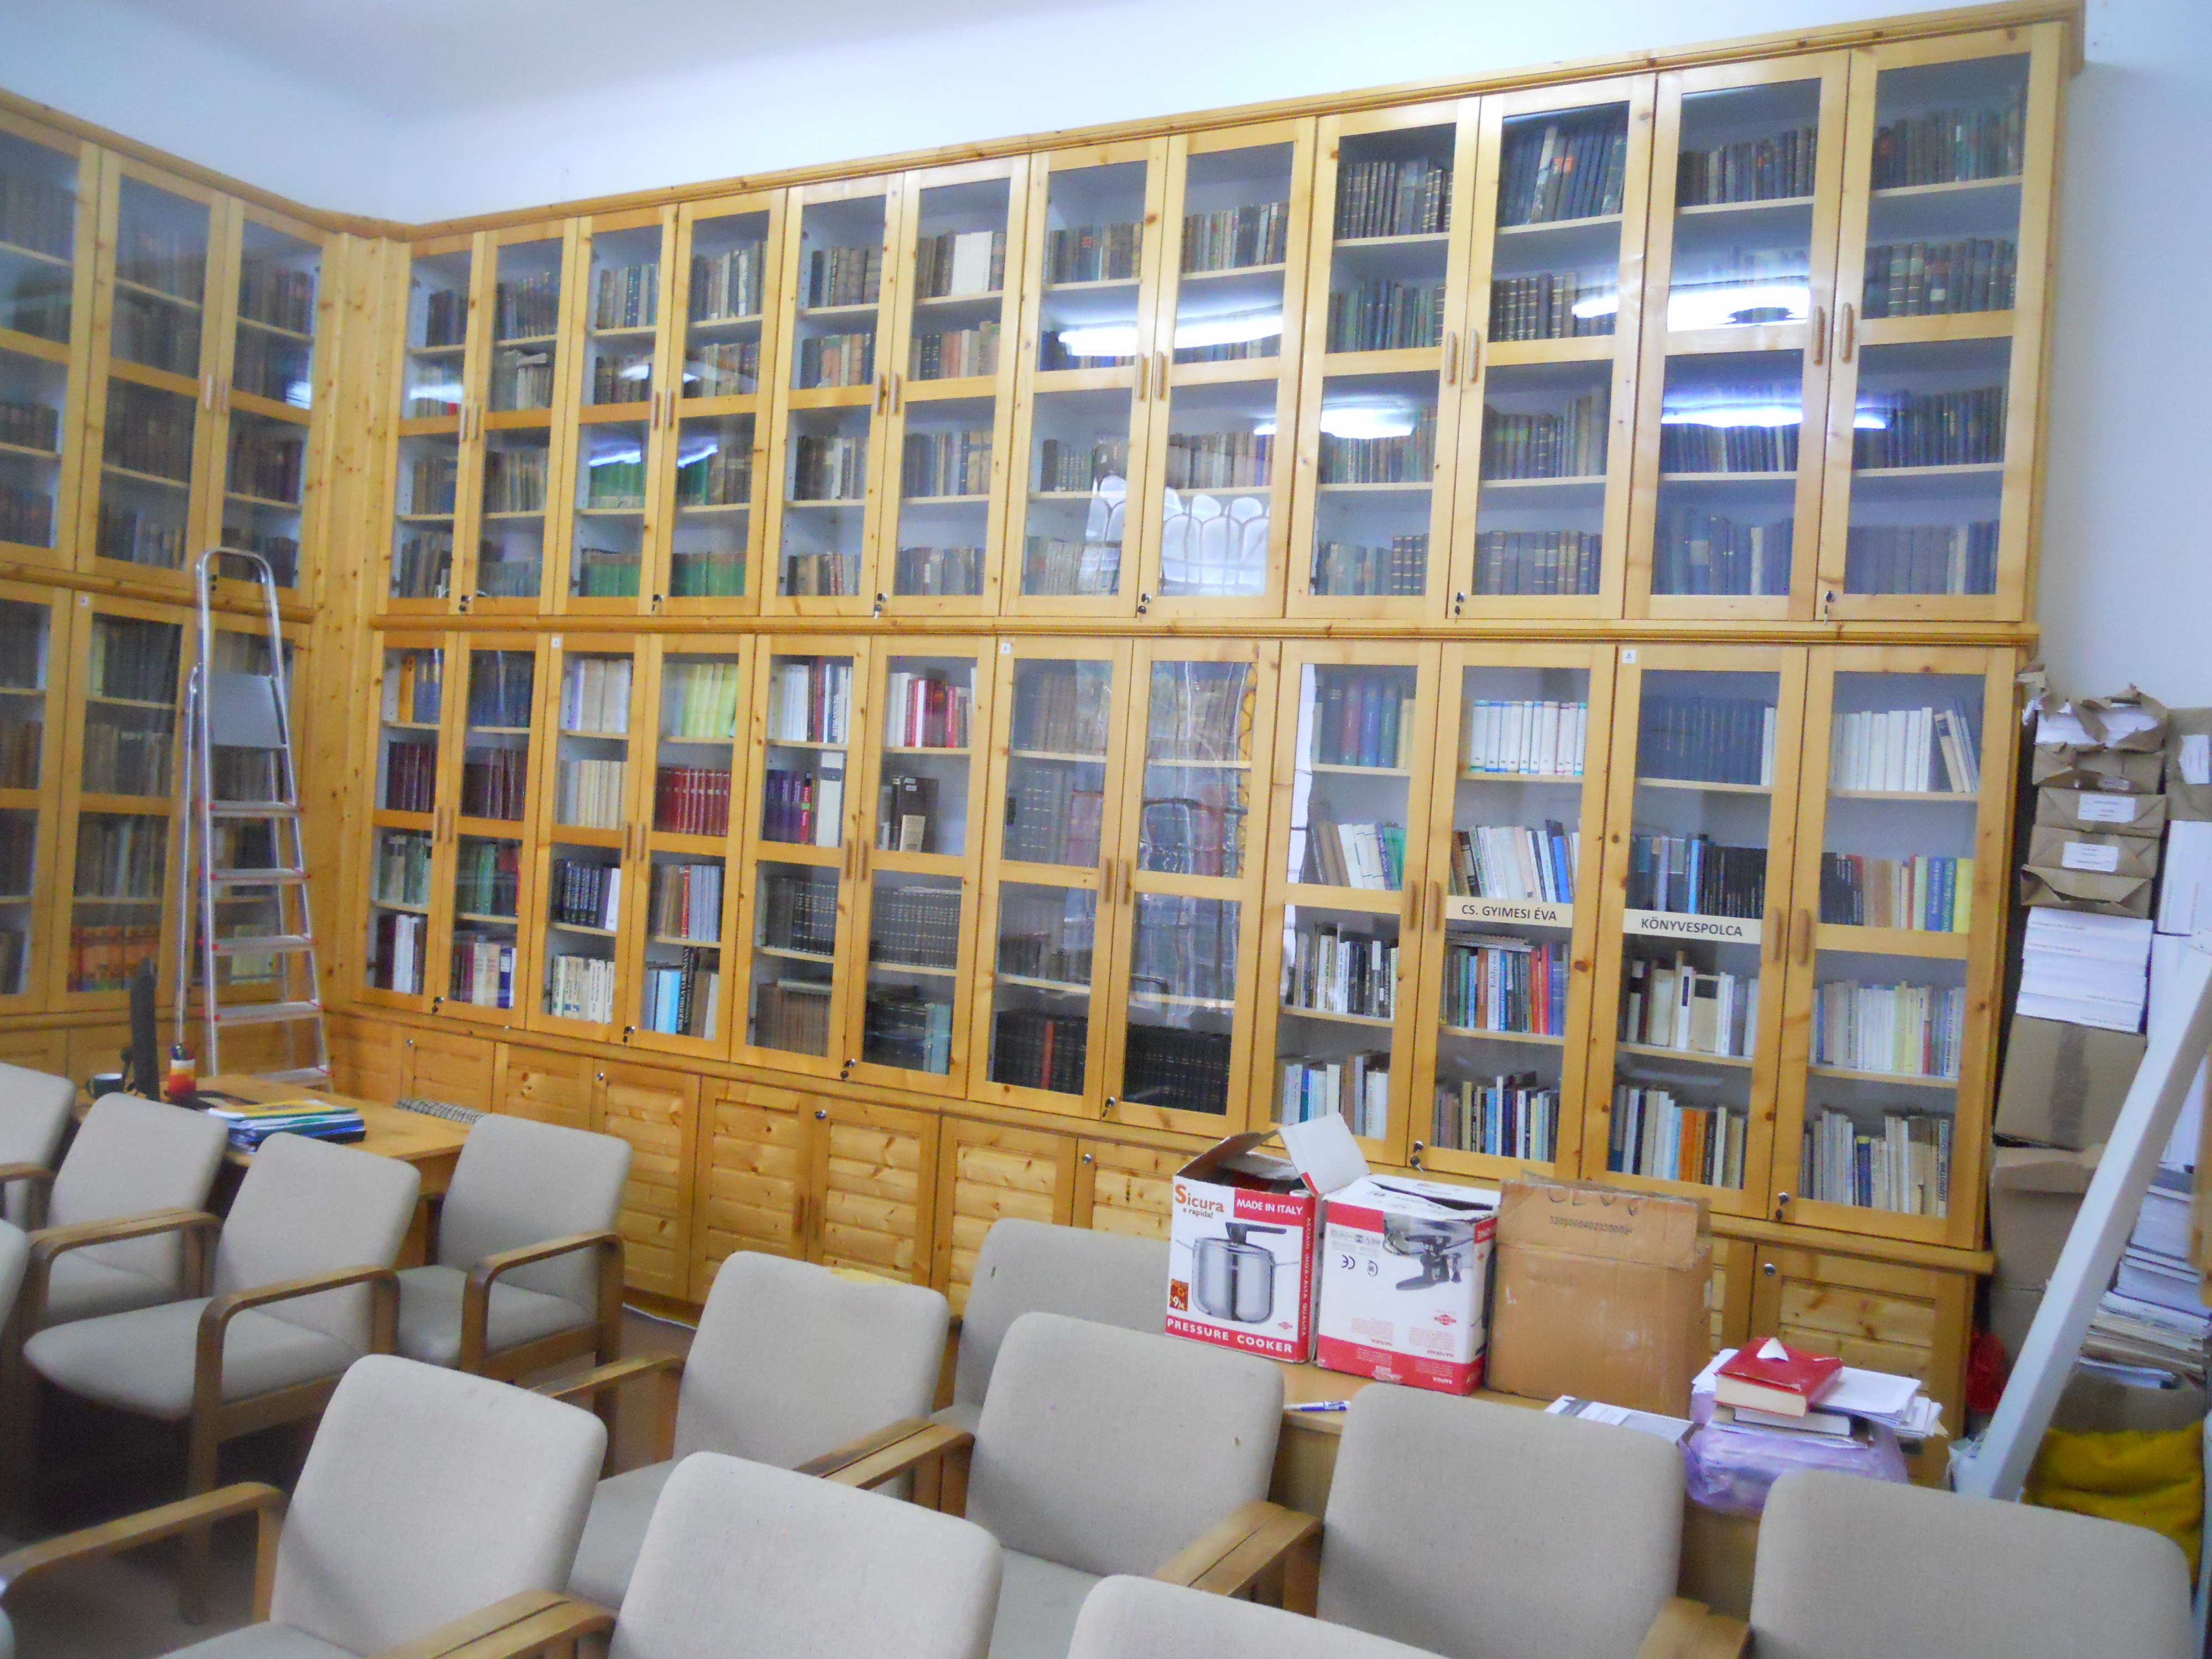 Éva Cseke-Gyimesi Collection at BCU Cluj-Napoca (Library of the Institute of Hungarian Literature)